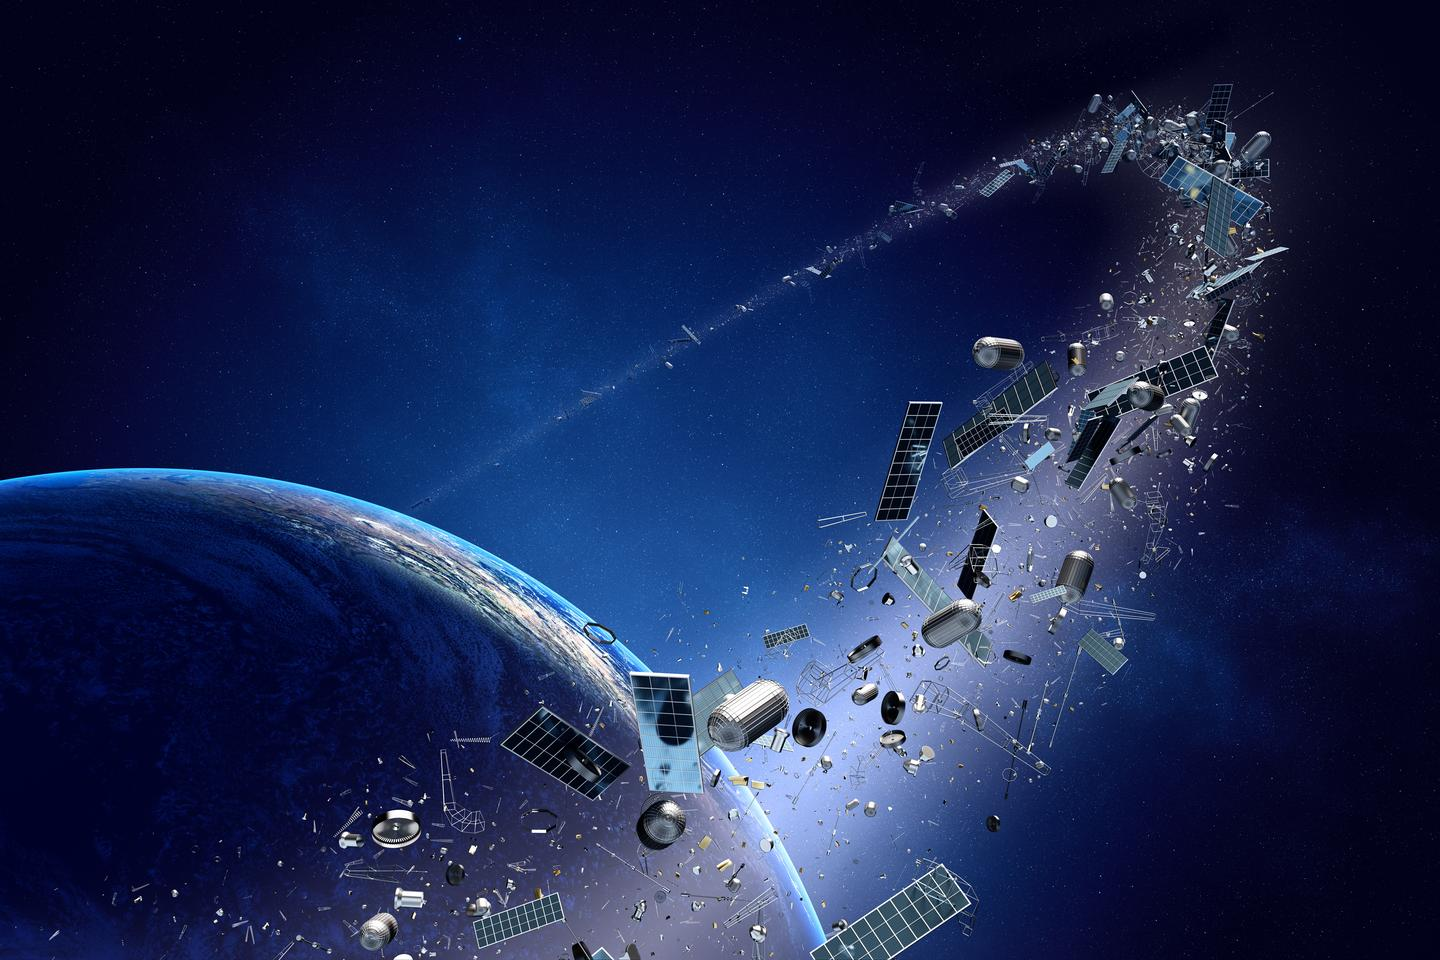 A laser/telescope system may be able to de-orbit smaller pieces of orbital debris (Image: Shutterstock)